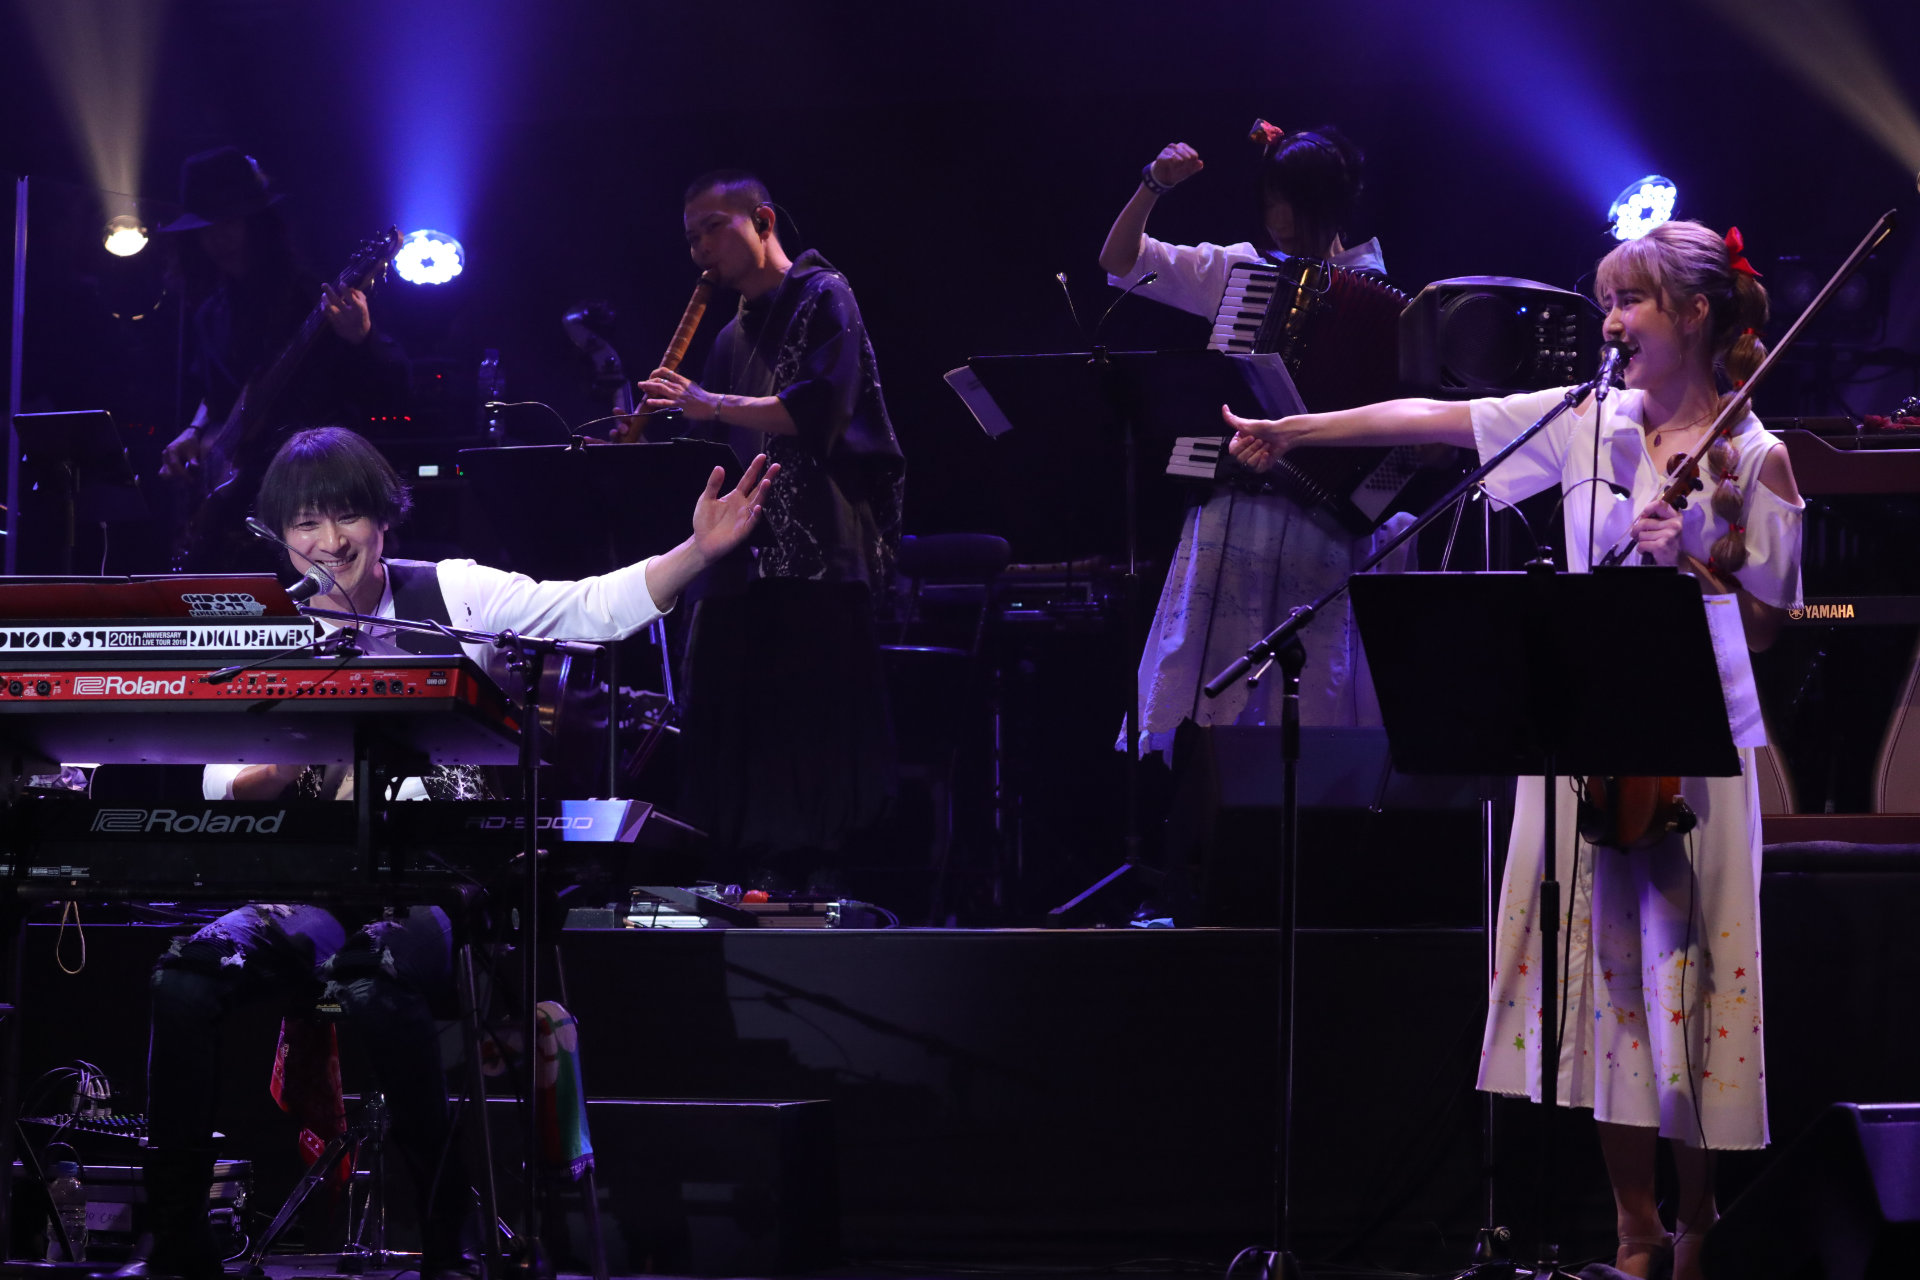 Chrono Cross concert photo of a female violinist giving composer Yasunori Mitsuda a thumbs-up while he sits at his keyboards.